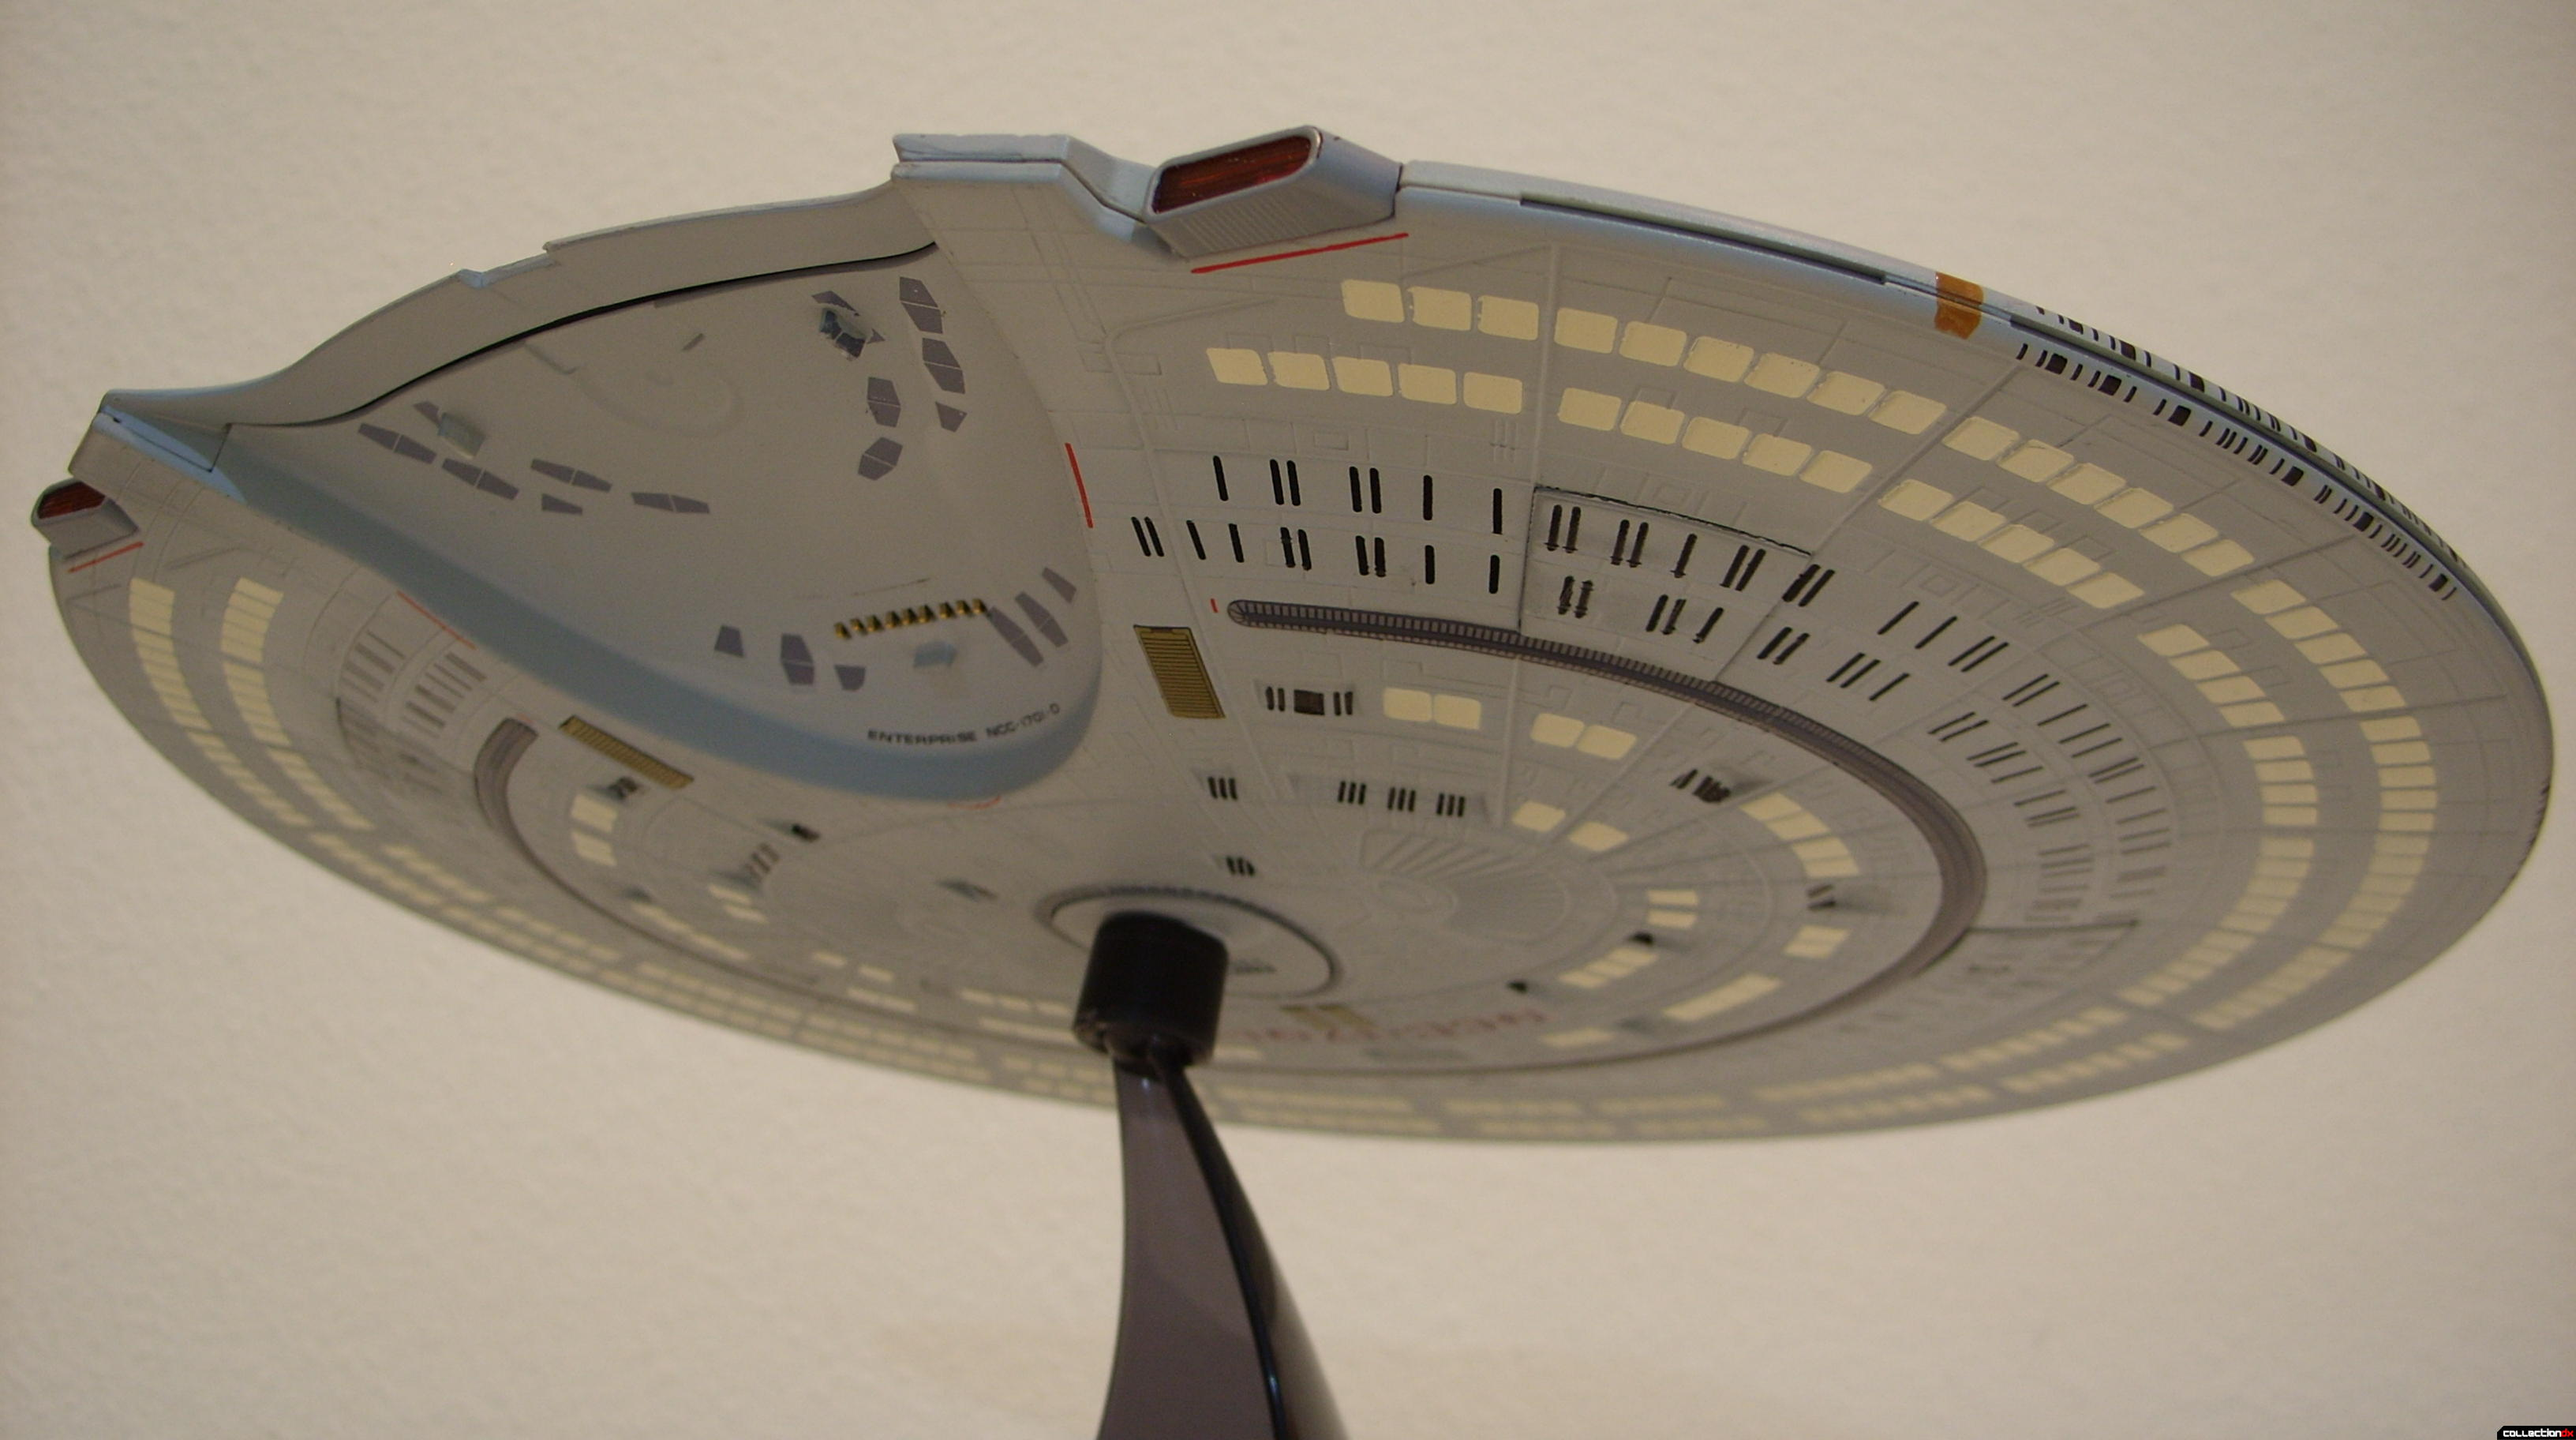 Starship Legends U.S.S. Enterprise-D (Saucer Section, aft-ventral)